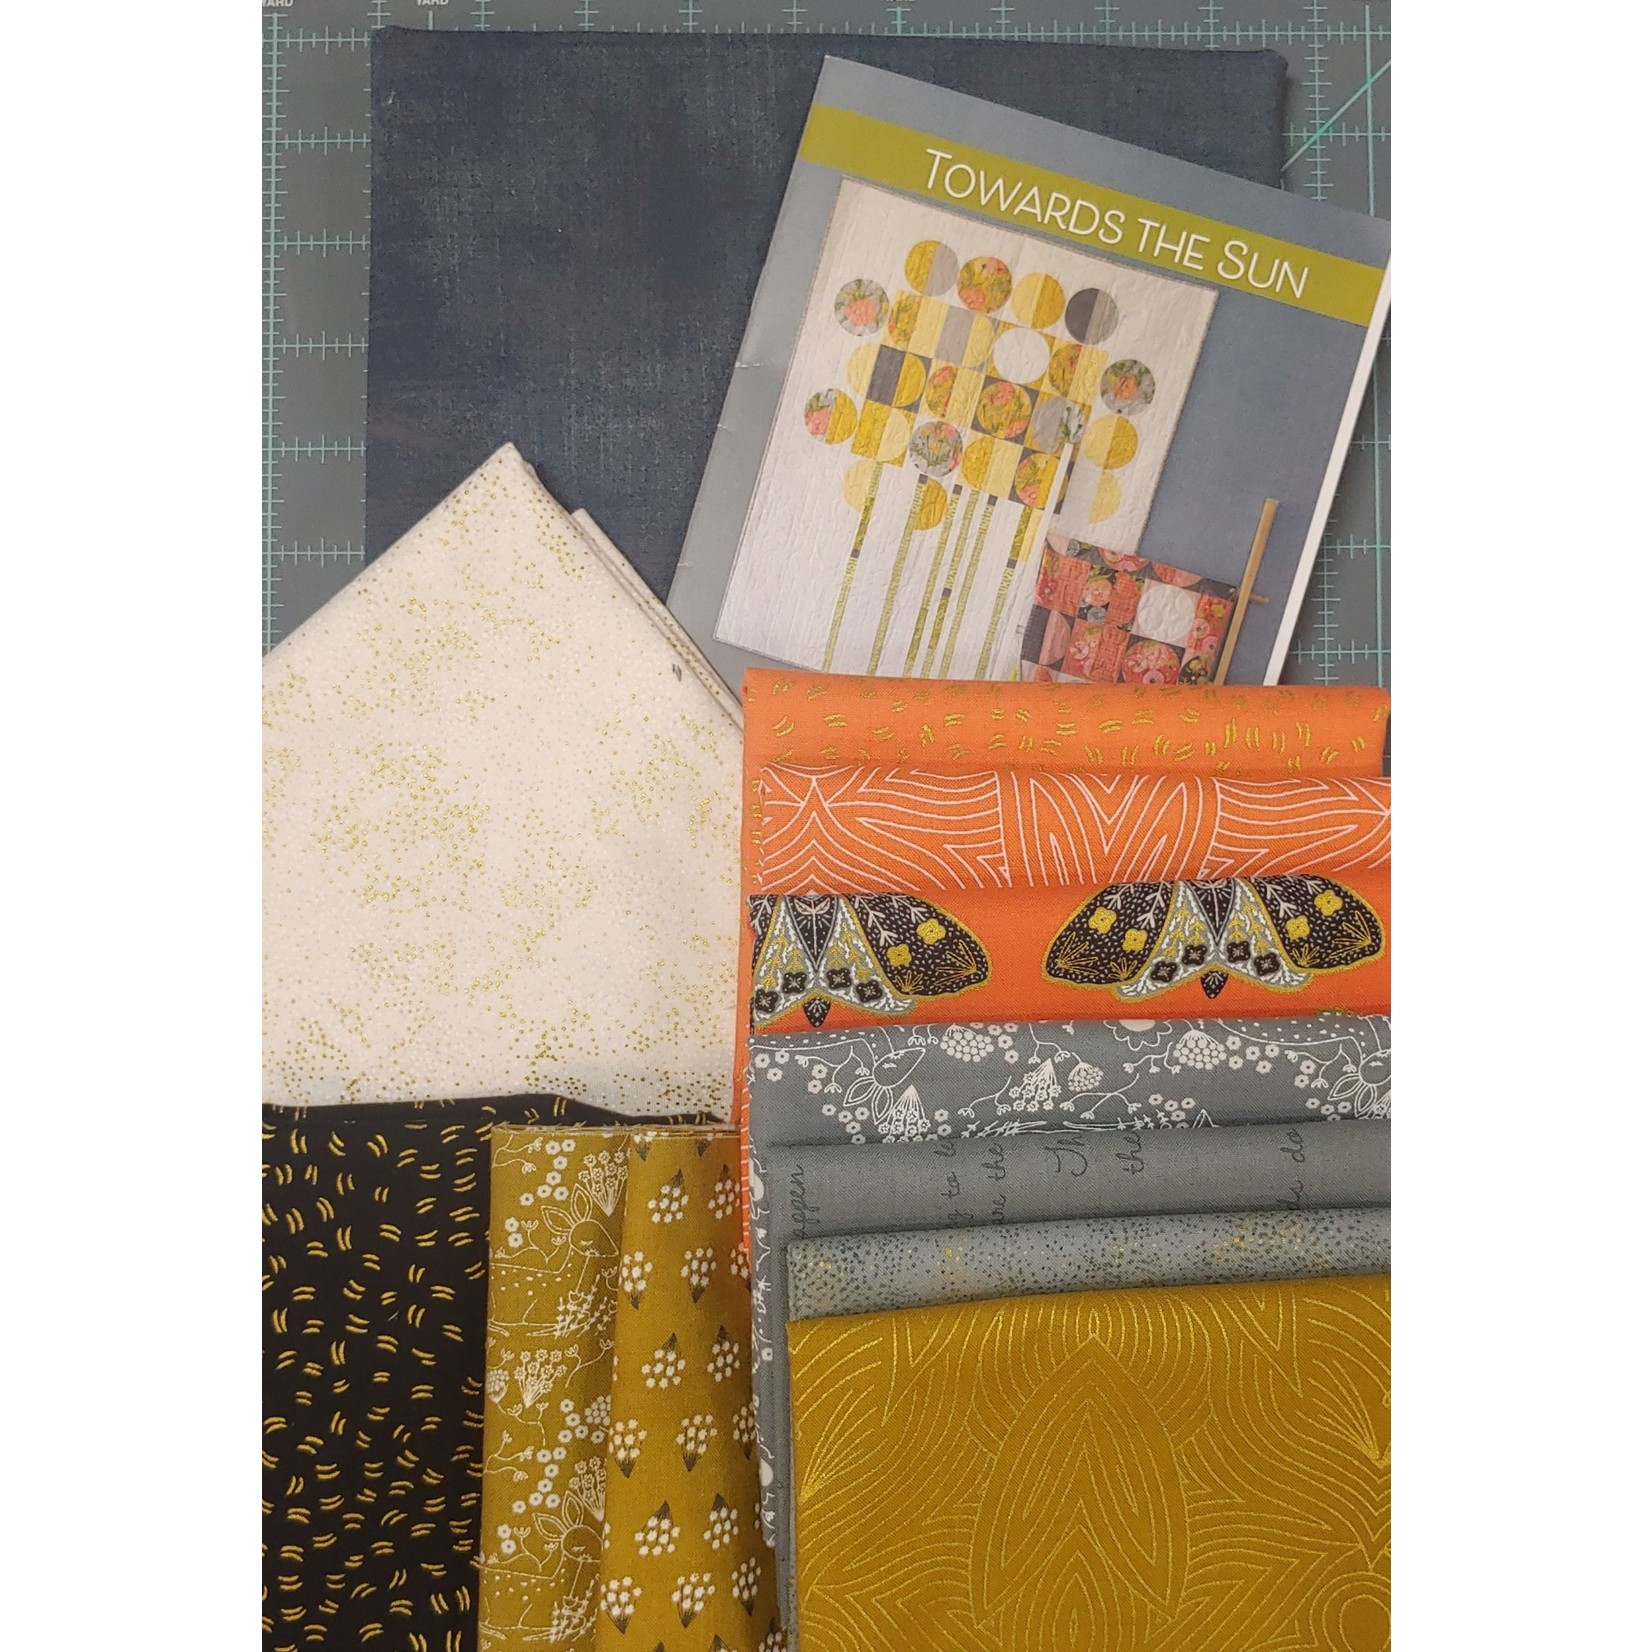 Robin Pickens Quilt Patterns Towards The Sun Quilt Kit - Dark Collection